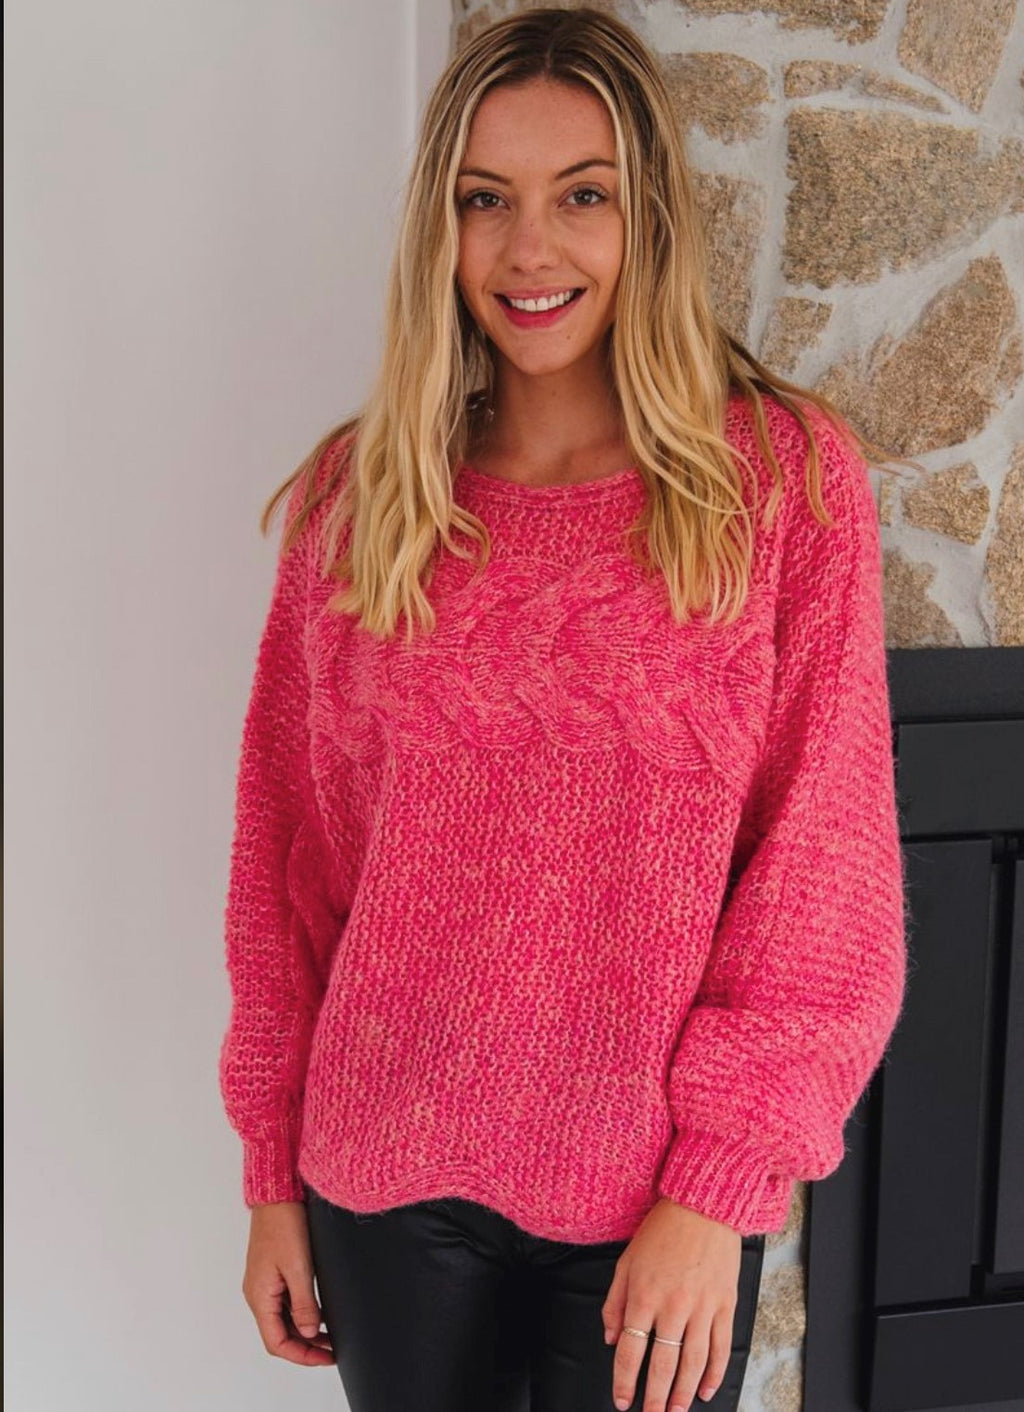 Pink chunky-ish womens knitted jumper. Large scalloped edge on the bottom. Sits just above your bottom at the front and back. Slight yellow marle throughout the pink, not noticeable until you look very closely. Different stitching used to created a wave effect across the breast area continuing down the front of the sleeves. Slight balloon sleeve to the wrist where a cuff is stitched. Scoop neck, not high. 65% Acrylic 35% Wool.